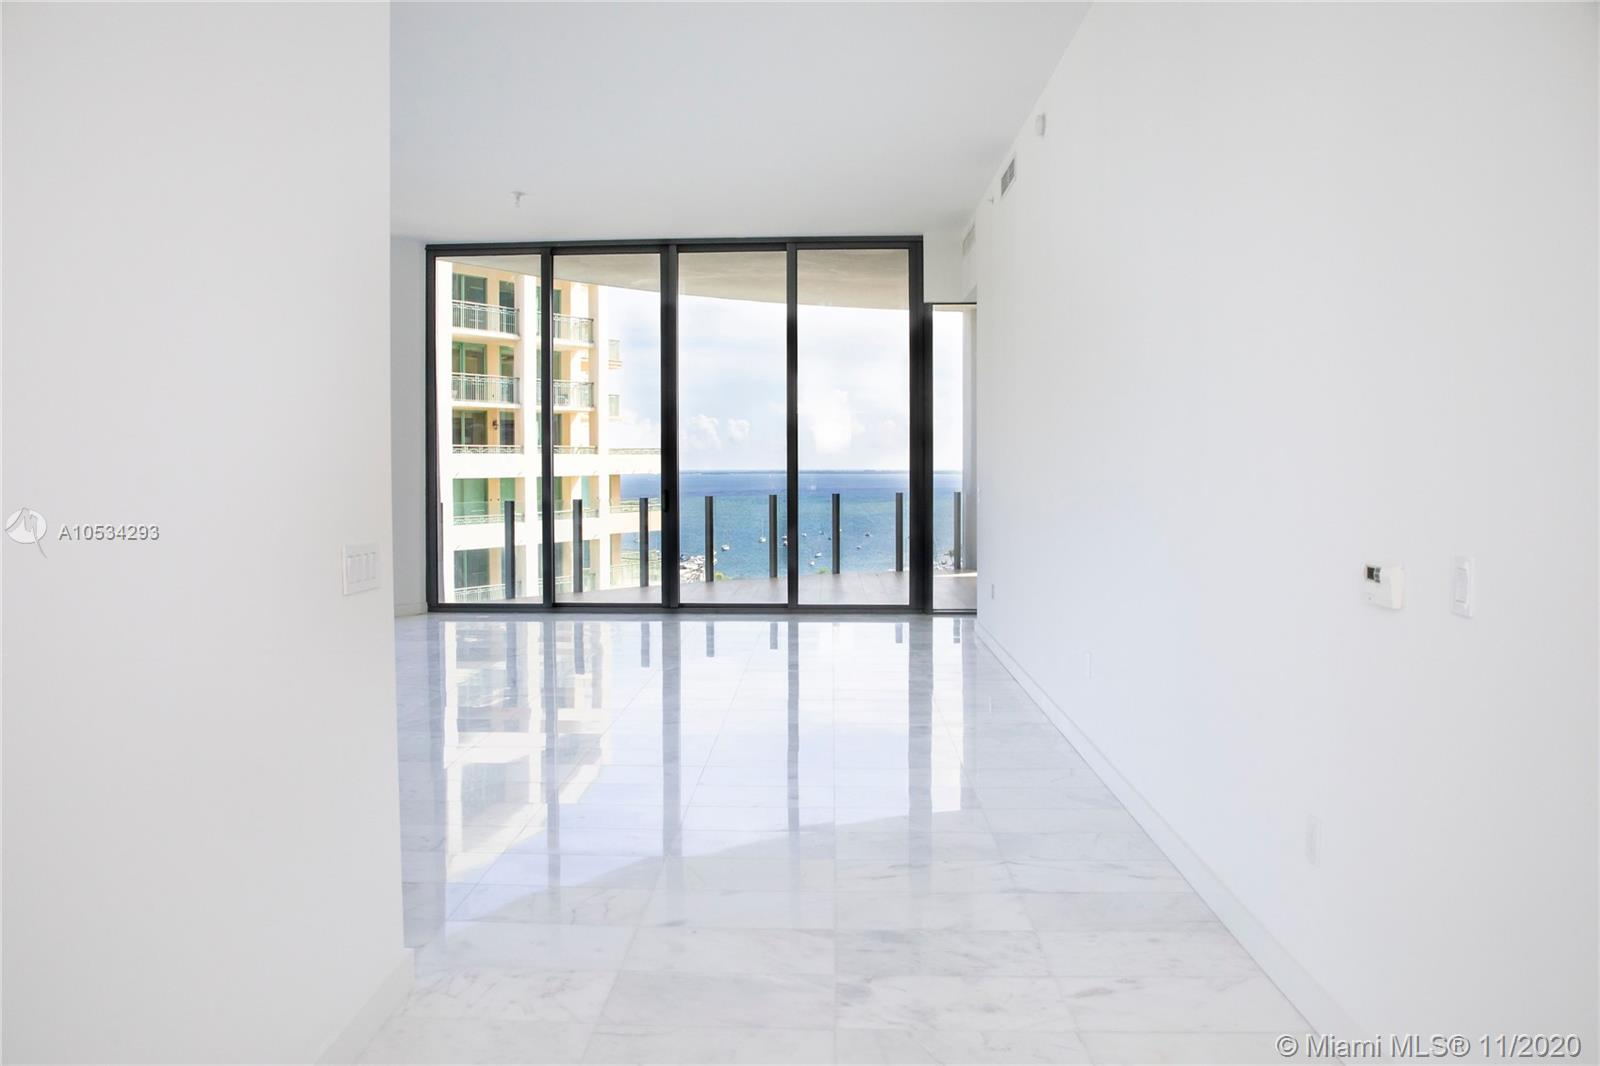 """THE MOST PRESTIGIOUS AND EXQUISITE BUILDING IN SOUTH FLORIDA """"TWO PARK GROVE"""". 3 Bedrooms, 3 Full bathrooms and a powder room. Breathtaking Bay View from Master and Social Areas with a majestic terrace on the 17th floor. City Views from Guest Rooms, both are en-suite bedrooms. Bathrooms and Kitchen Mastery Design By William Sofield,  Sub-zero and Wolf appliances.  Open concept kitchen-Dining-Living-Terrace. State of the Art amenities, like a luxury resort, roof top pool, ground pool, cabanas, gym, sauna, steam room, children's play areas. Wine tasting room with private wine storage, 5 acres of breathtaking gardens design By Enzo Enea. Come and own a life of  Luxury and Prestige."""